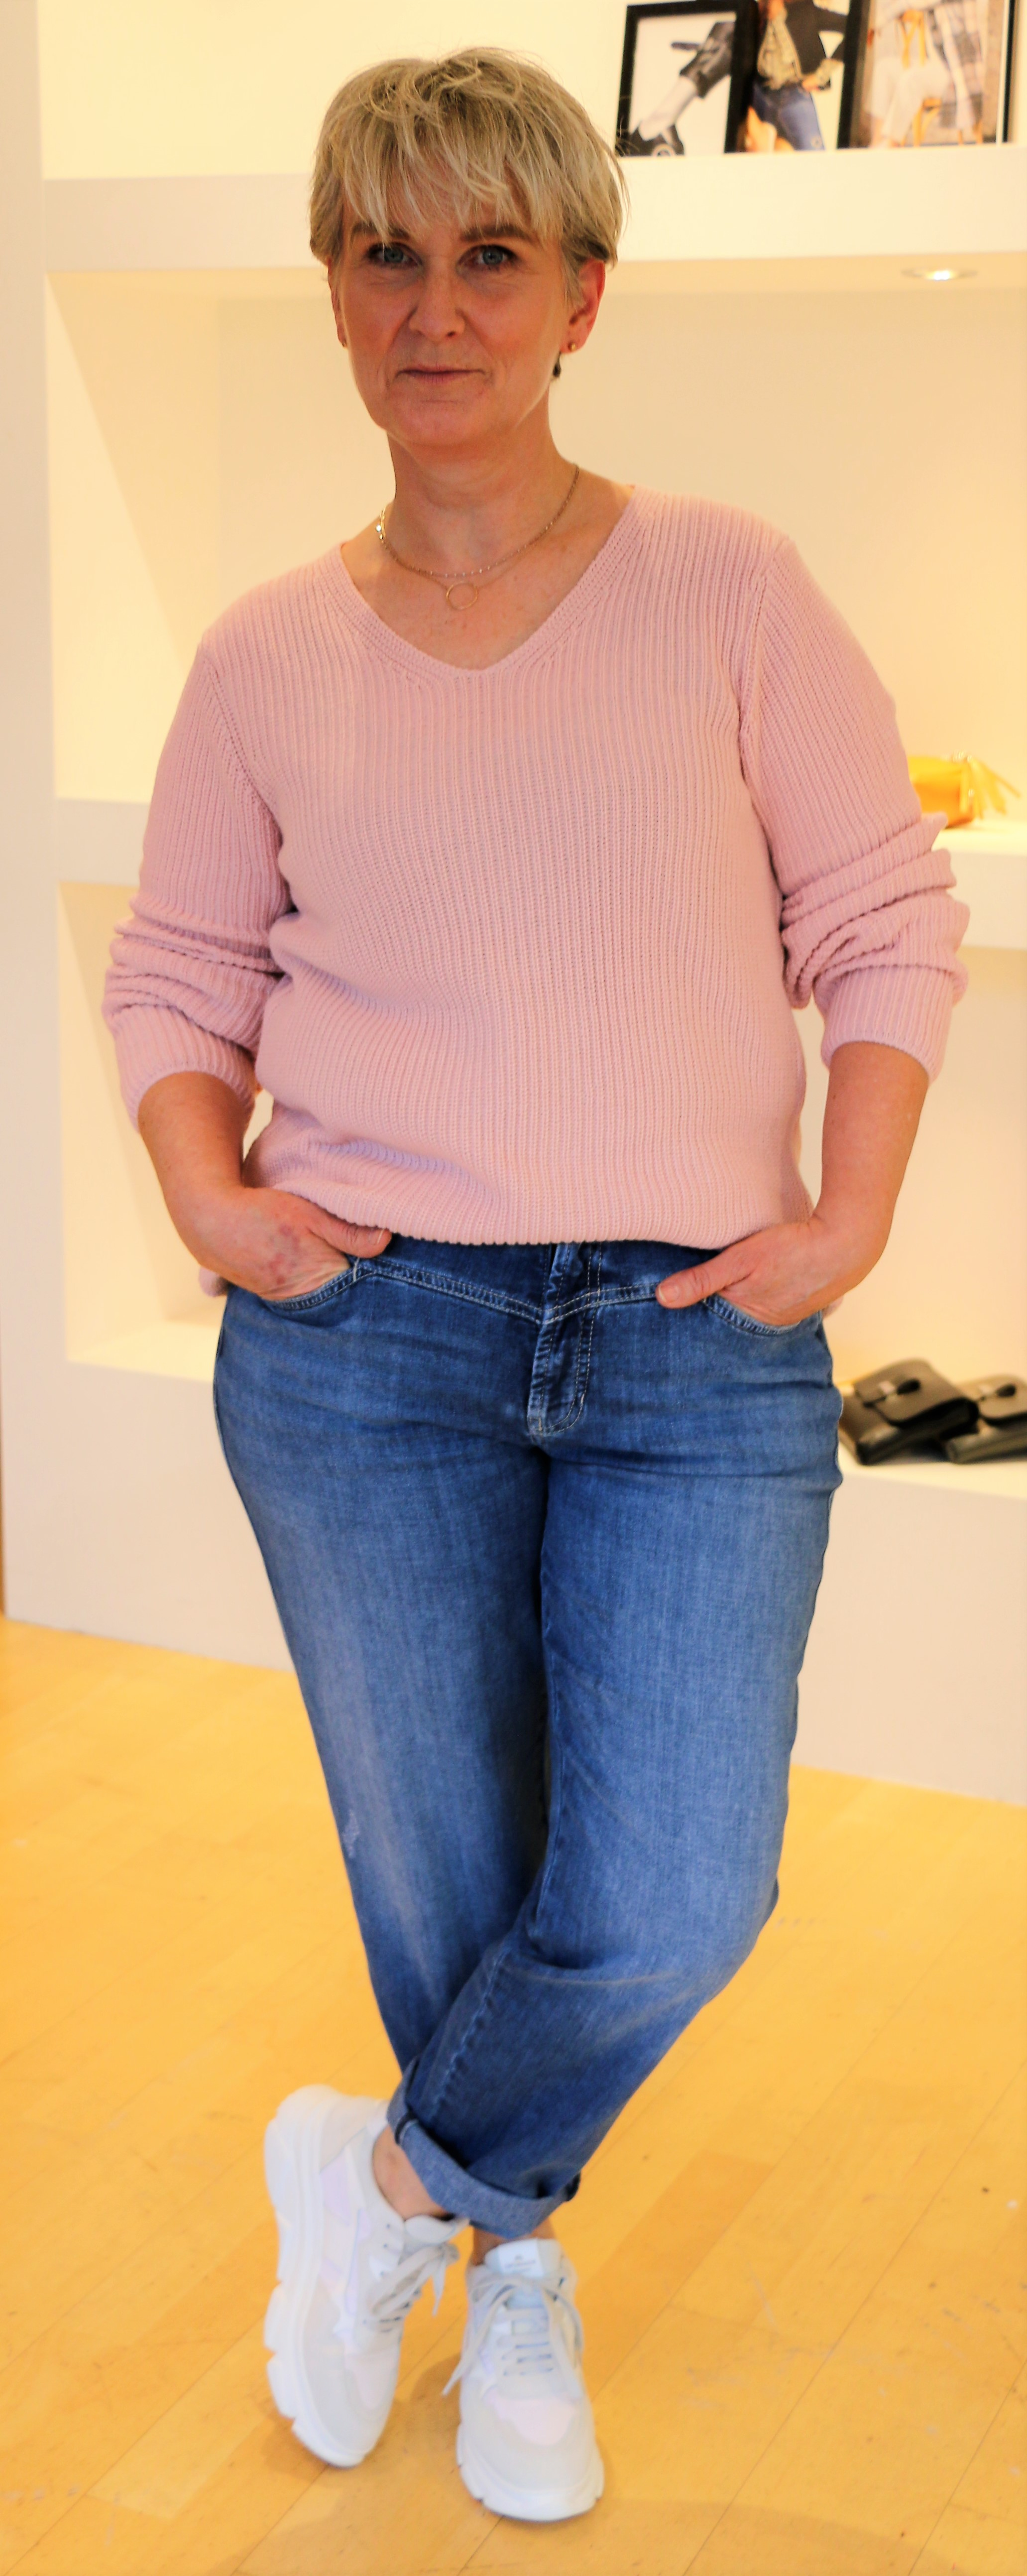 Bloomings Pulli & Cambio Jeans